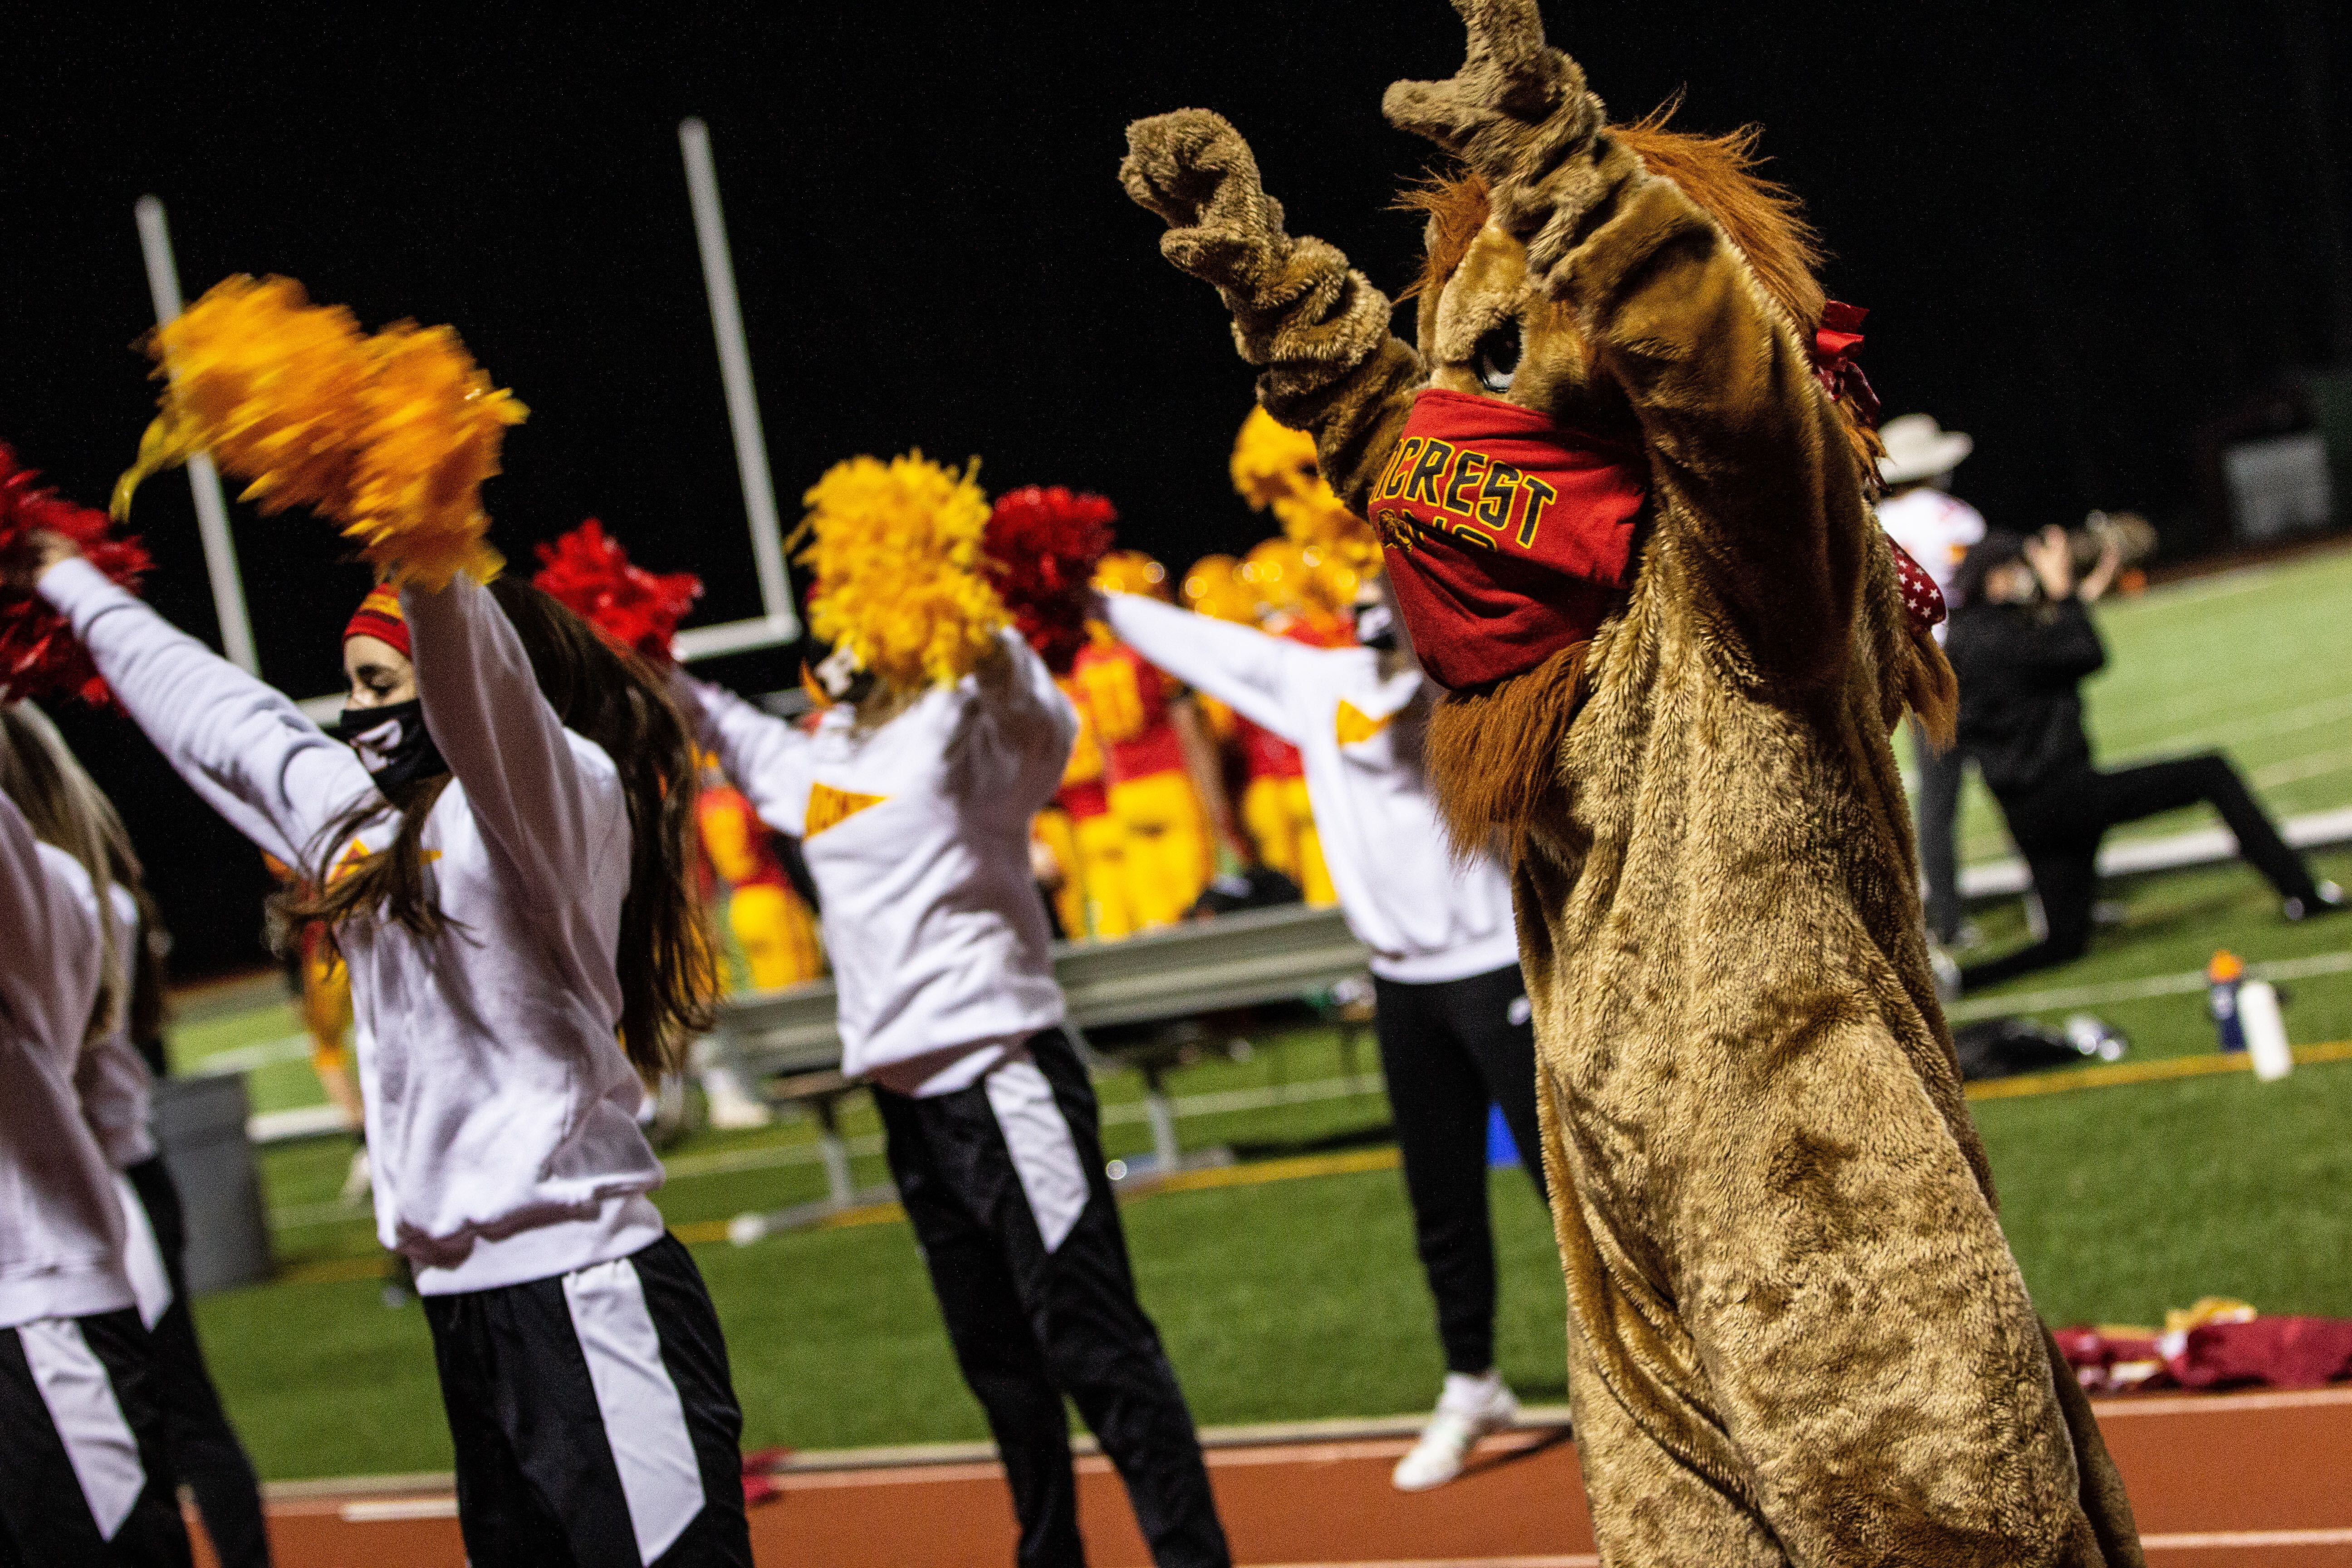 Even Penncrest High School's mascot wore a mask at Friday's Media Bowl.